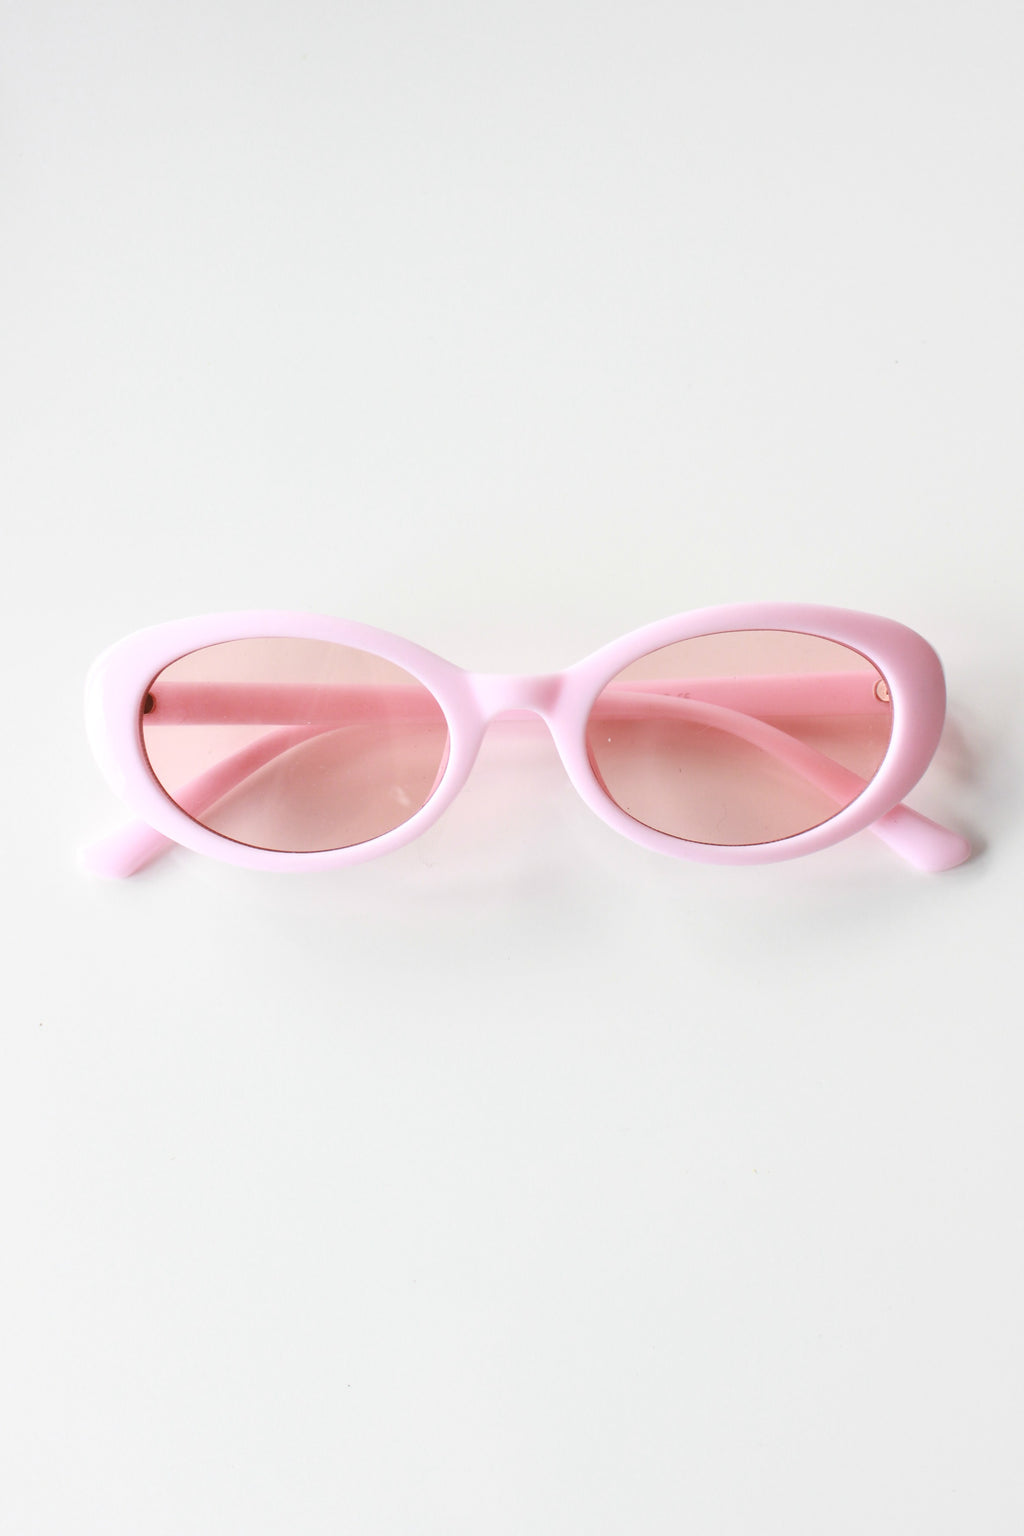 'BUBBLEGUM' Pink Oval Sunglasses